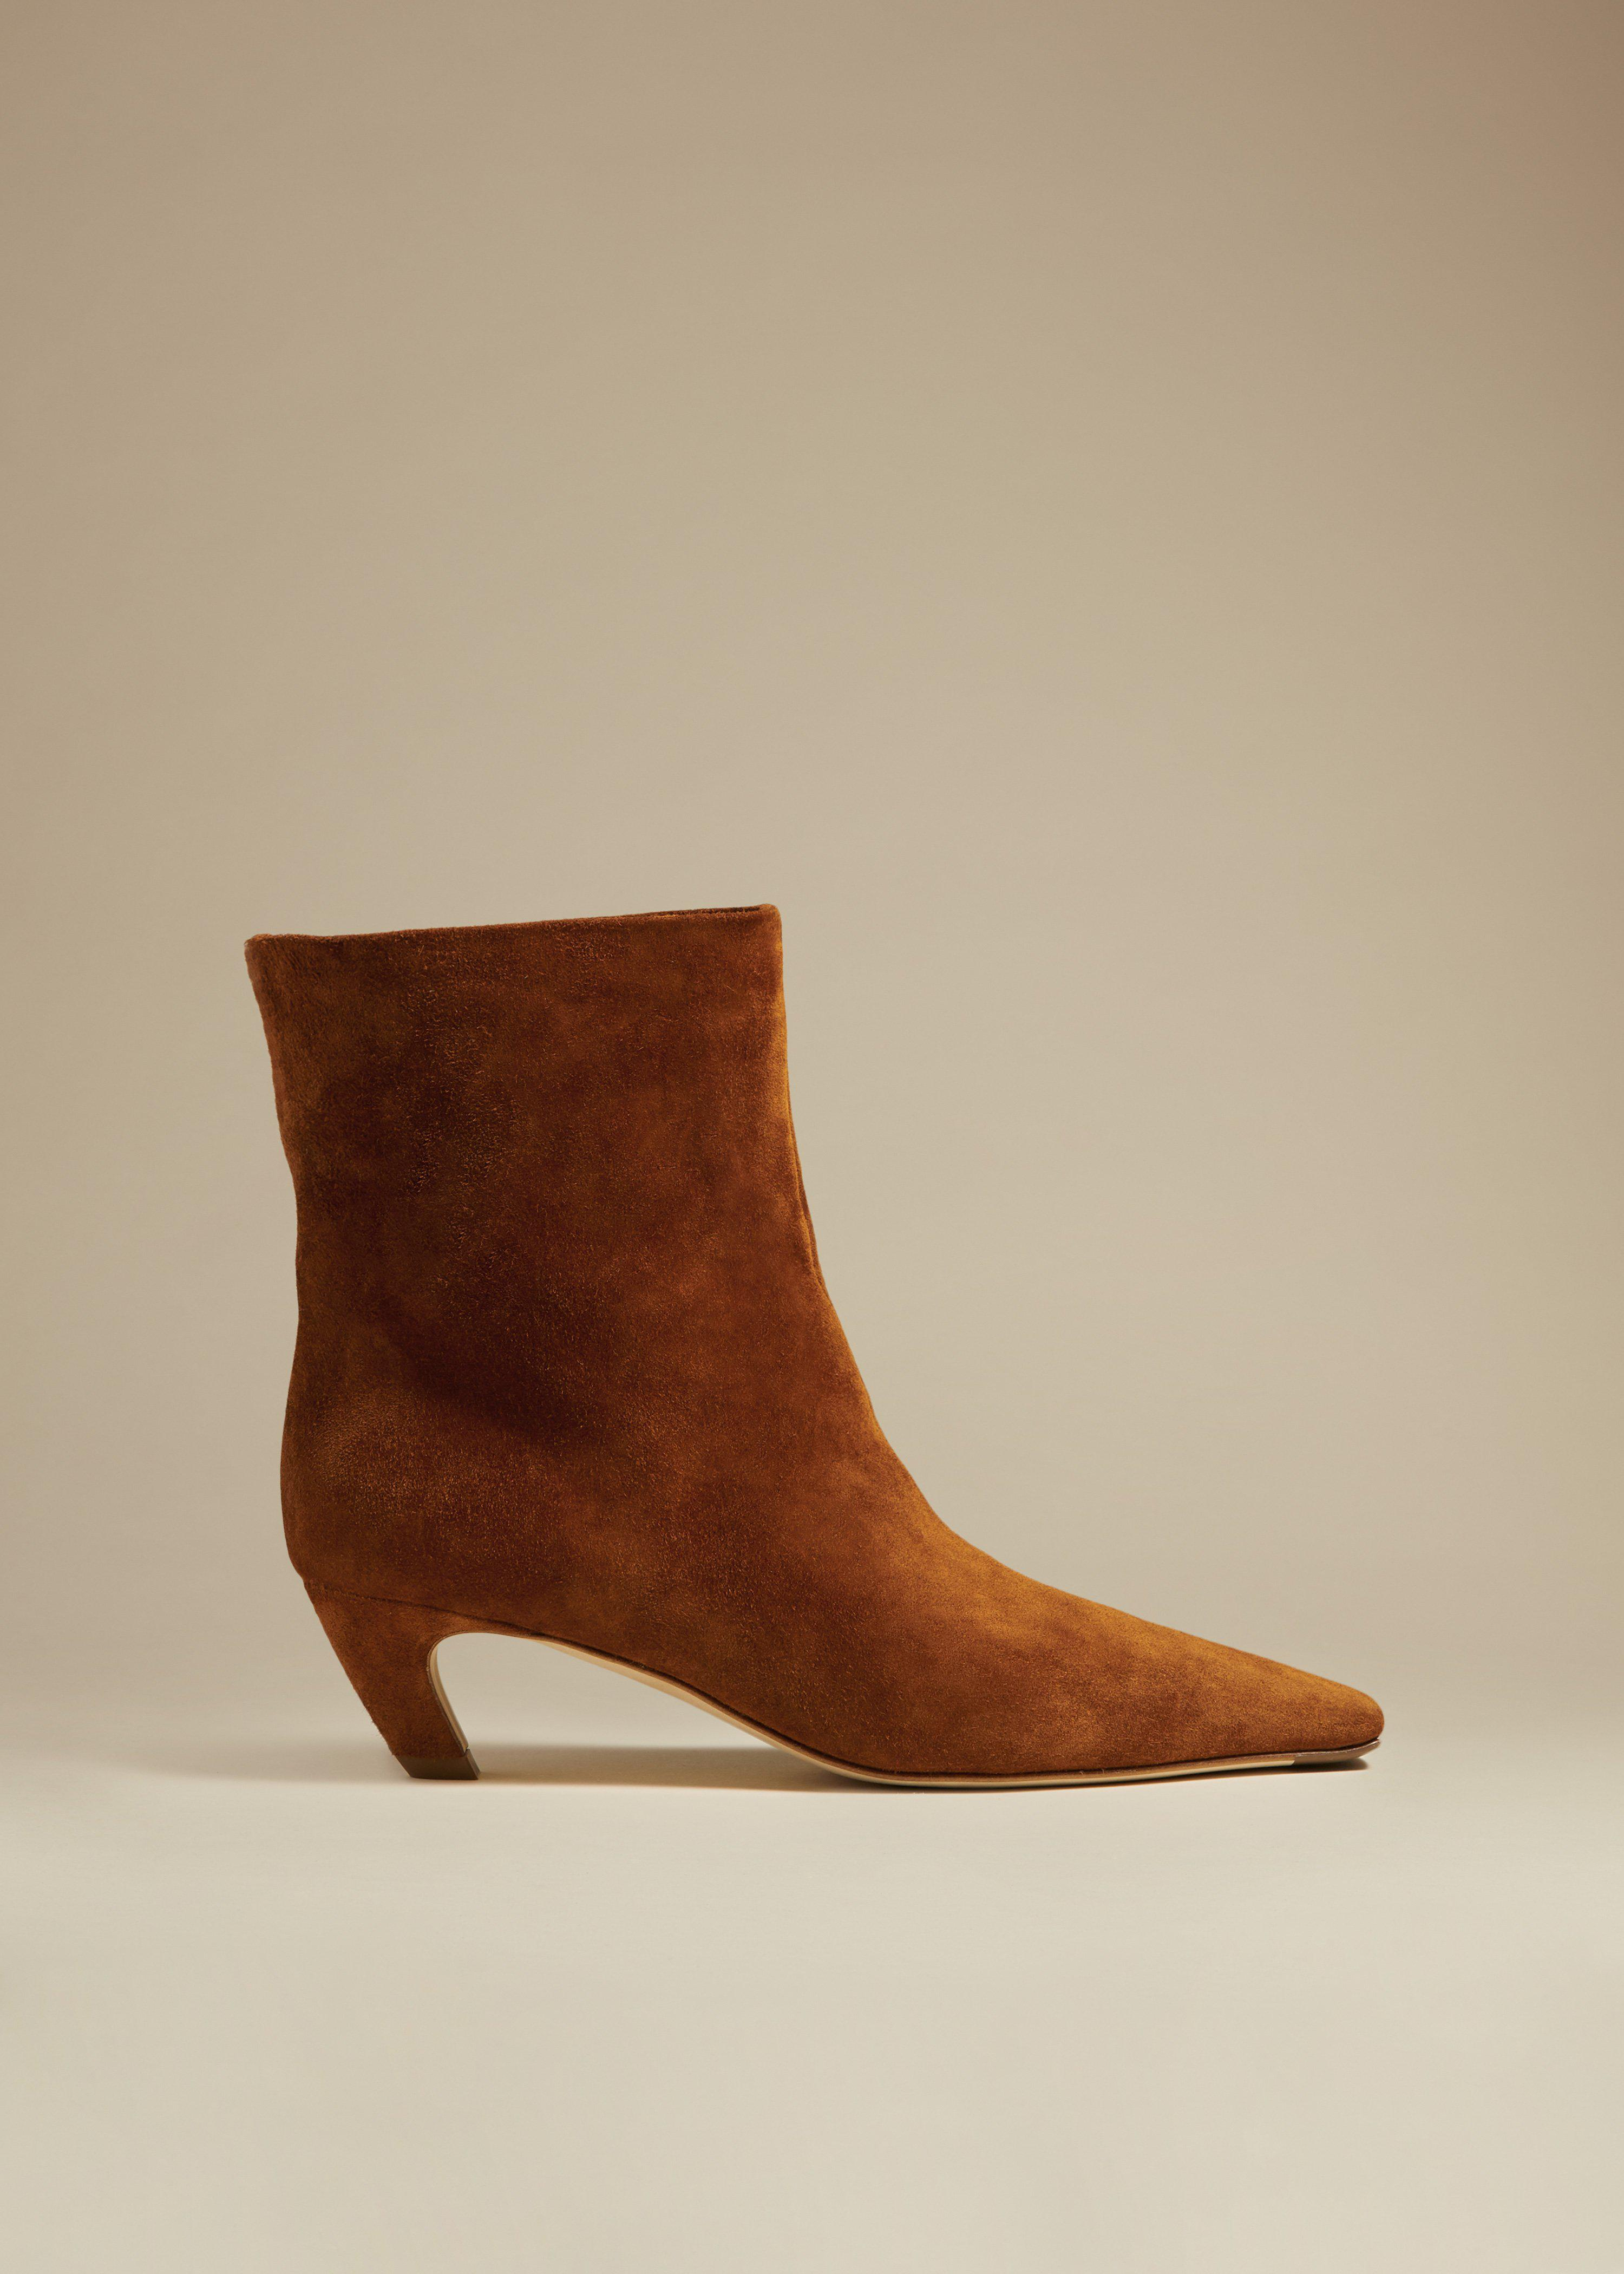 The Arizona Boot in Caramel Suede